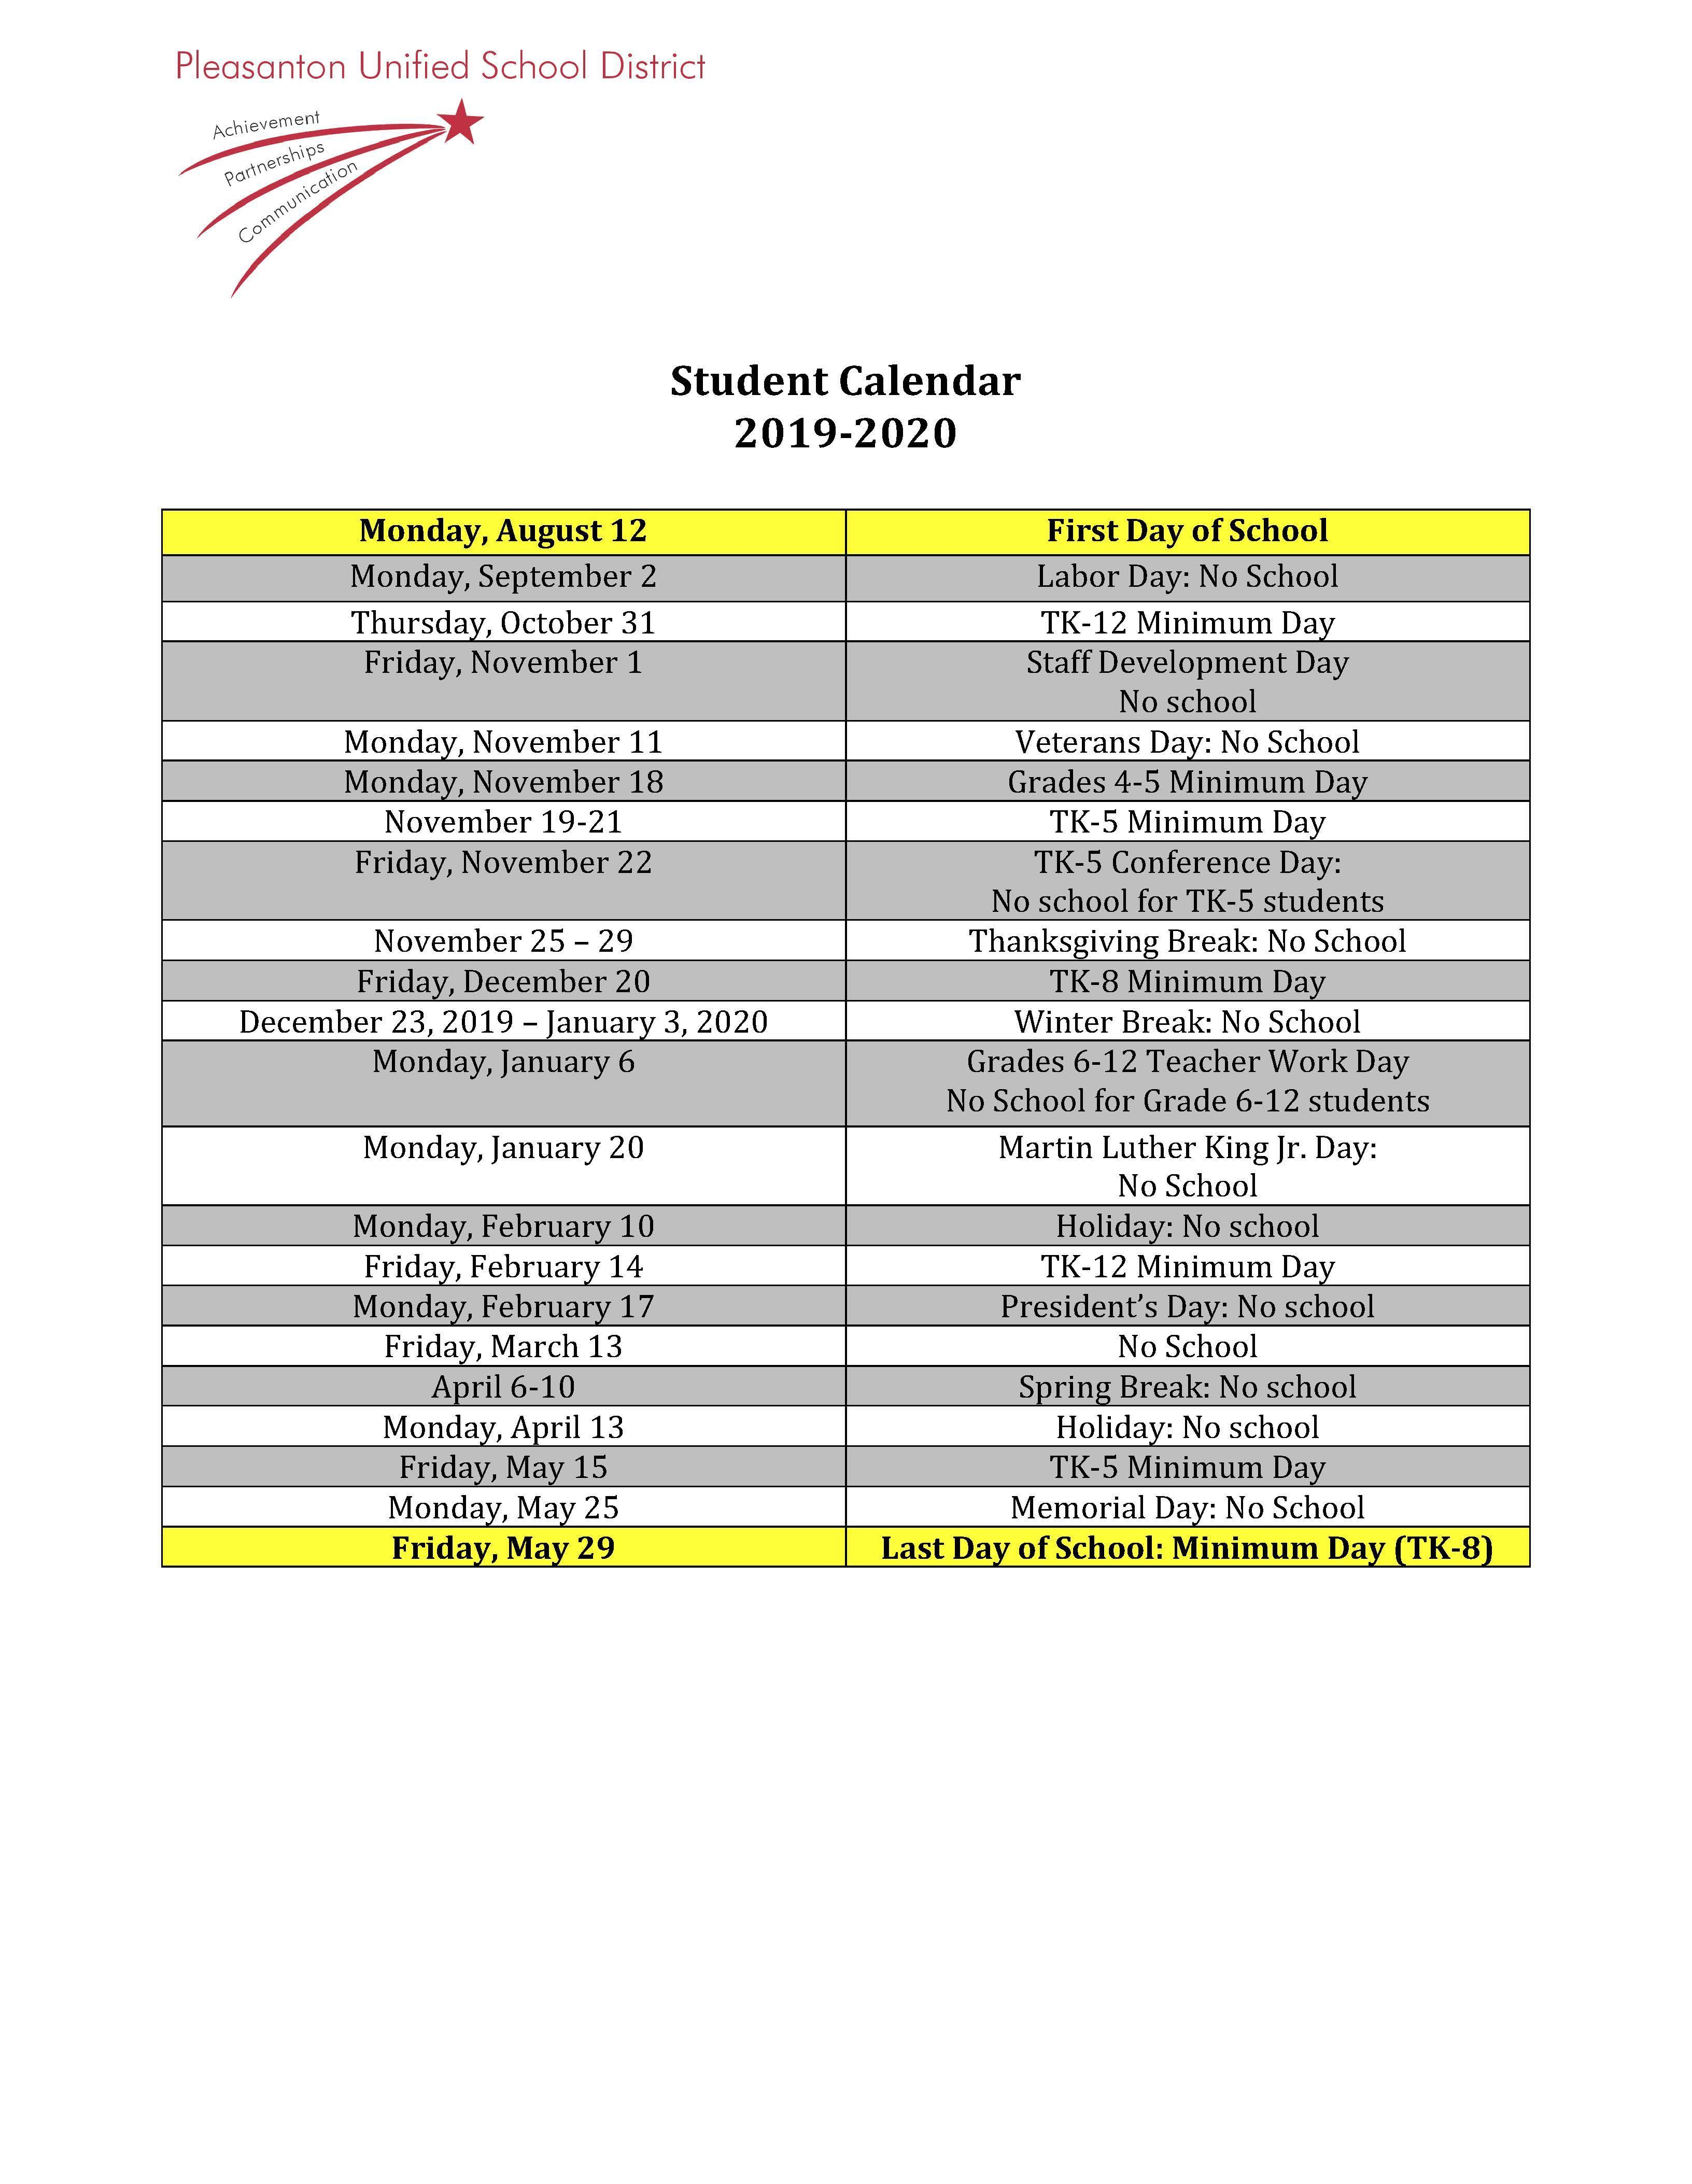 Calendars - Miscellaneous - Pleasanton Unified School District intended for 2021-2021 Kansas City School District Calendar